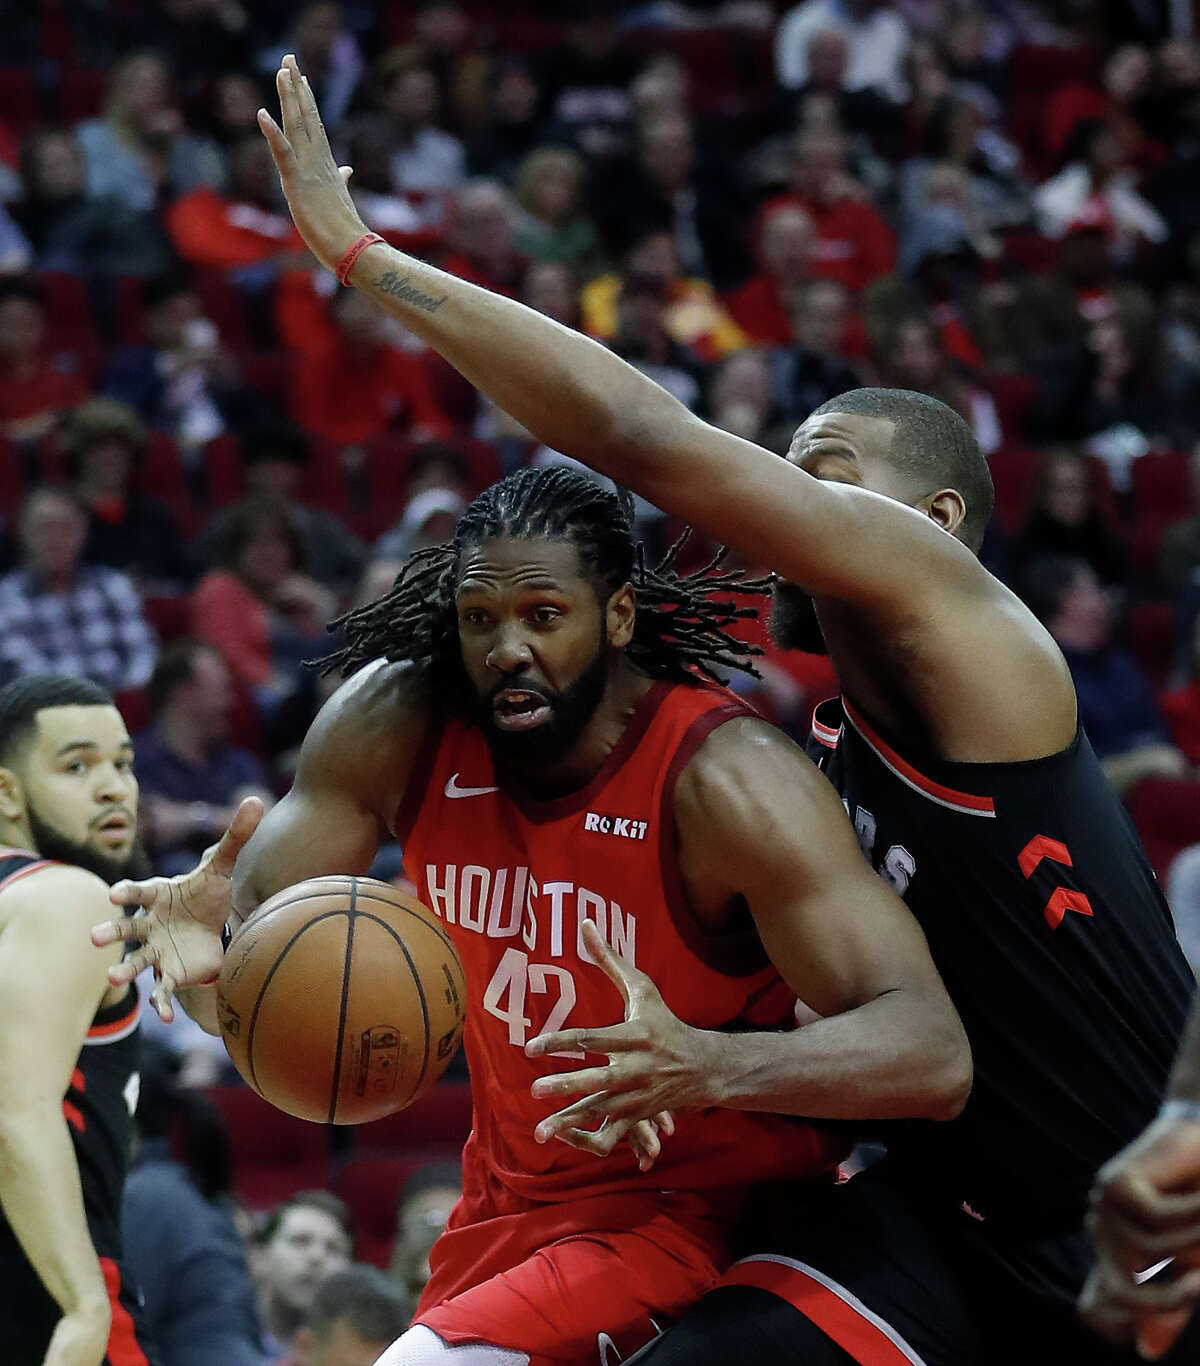 Houston Rockets center Nene Hilario (42) drives past Toronto Raptors center Greg Monroe (15) during the first half of an NBA basketball game at Toyota Center, Friday, Jan. 25, 2019, in Houston. J